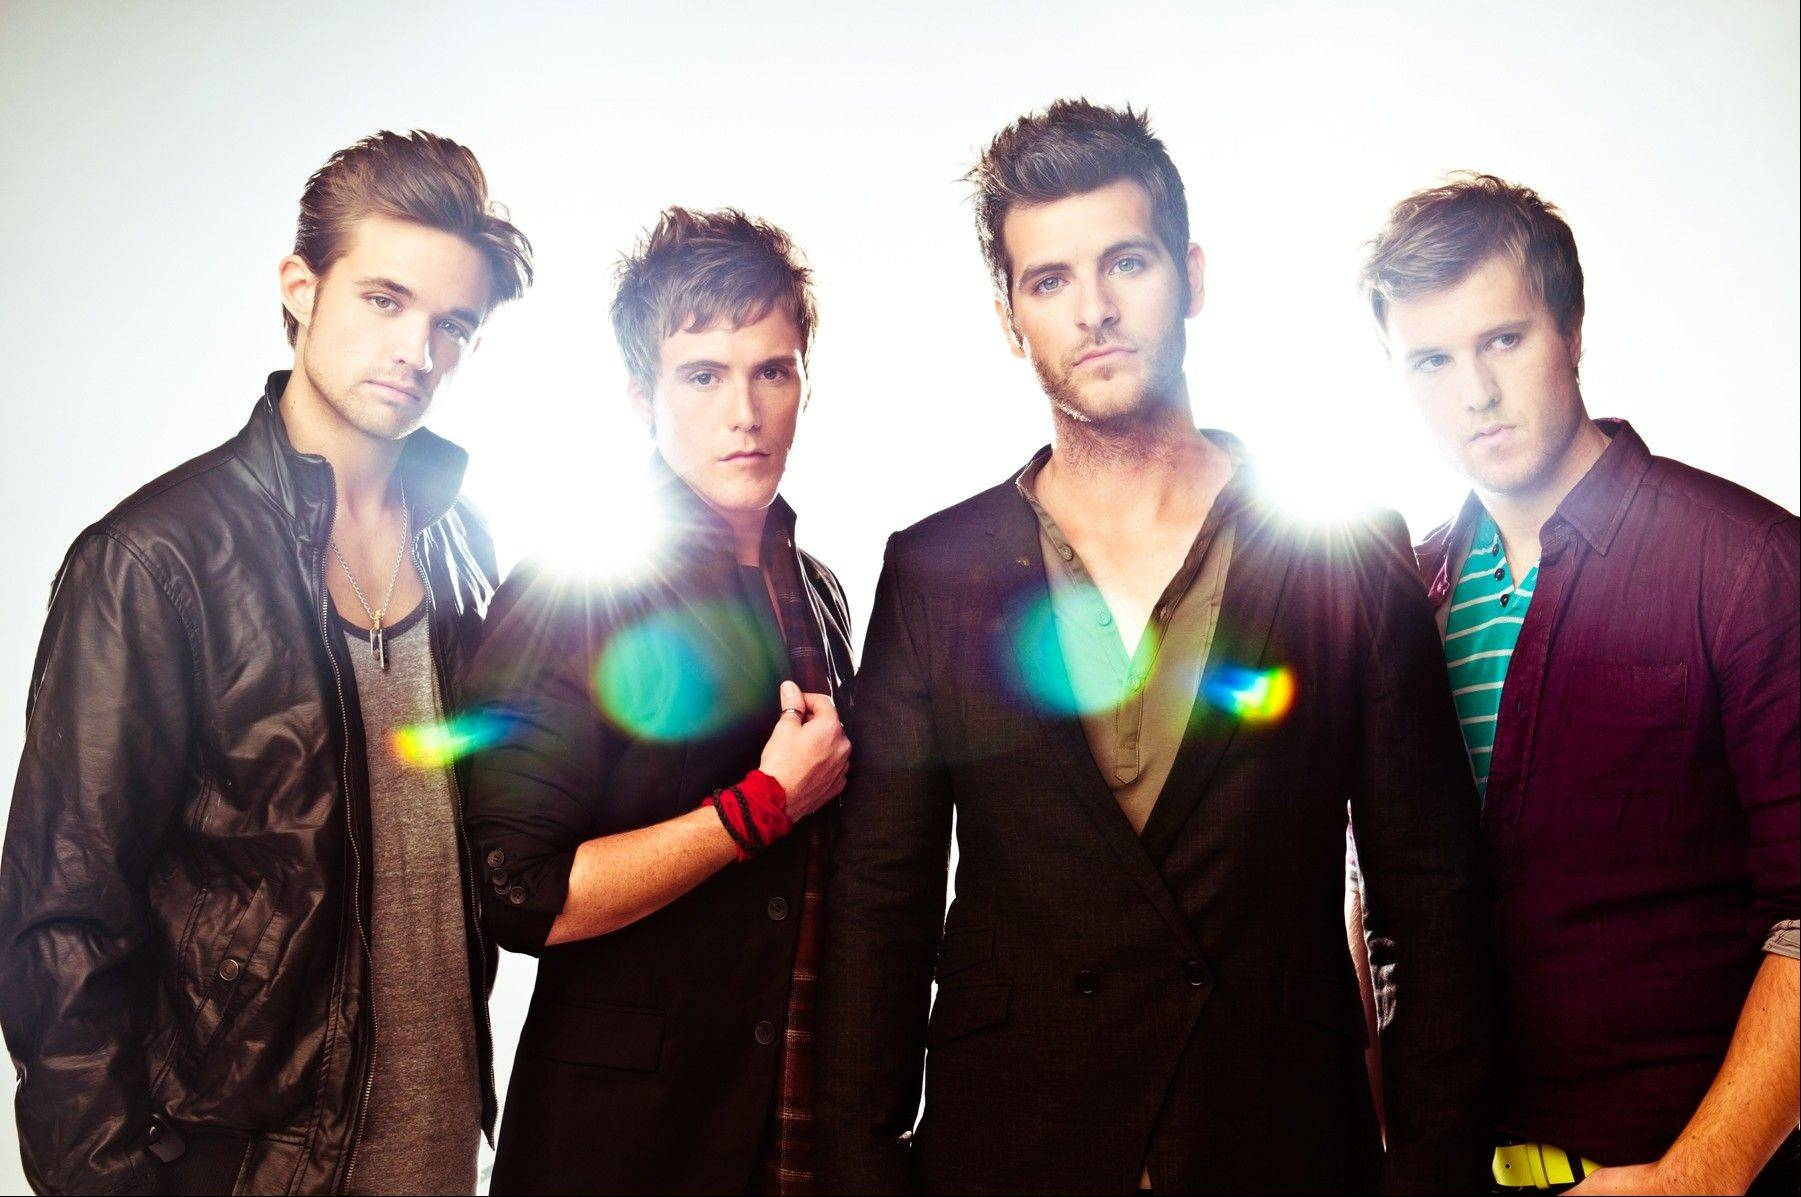 Christian pop group Anthem Lights will appear at the Norris Cultural Arts Center on Friday, Sept. 21.